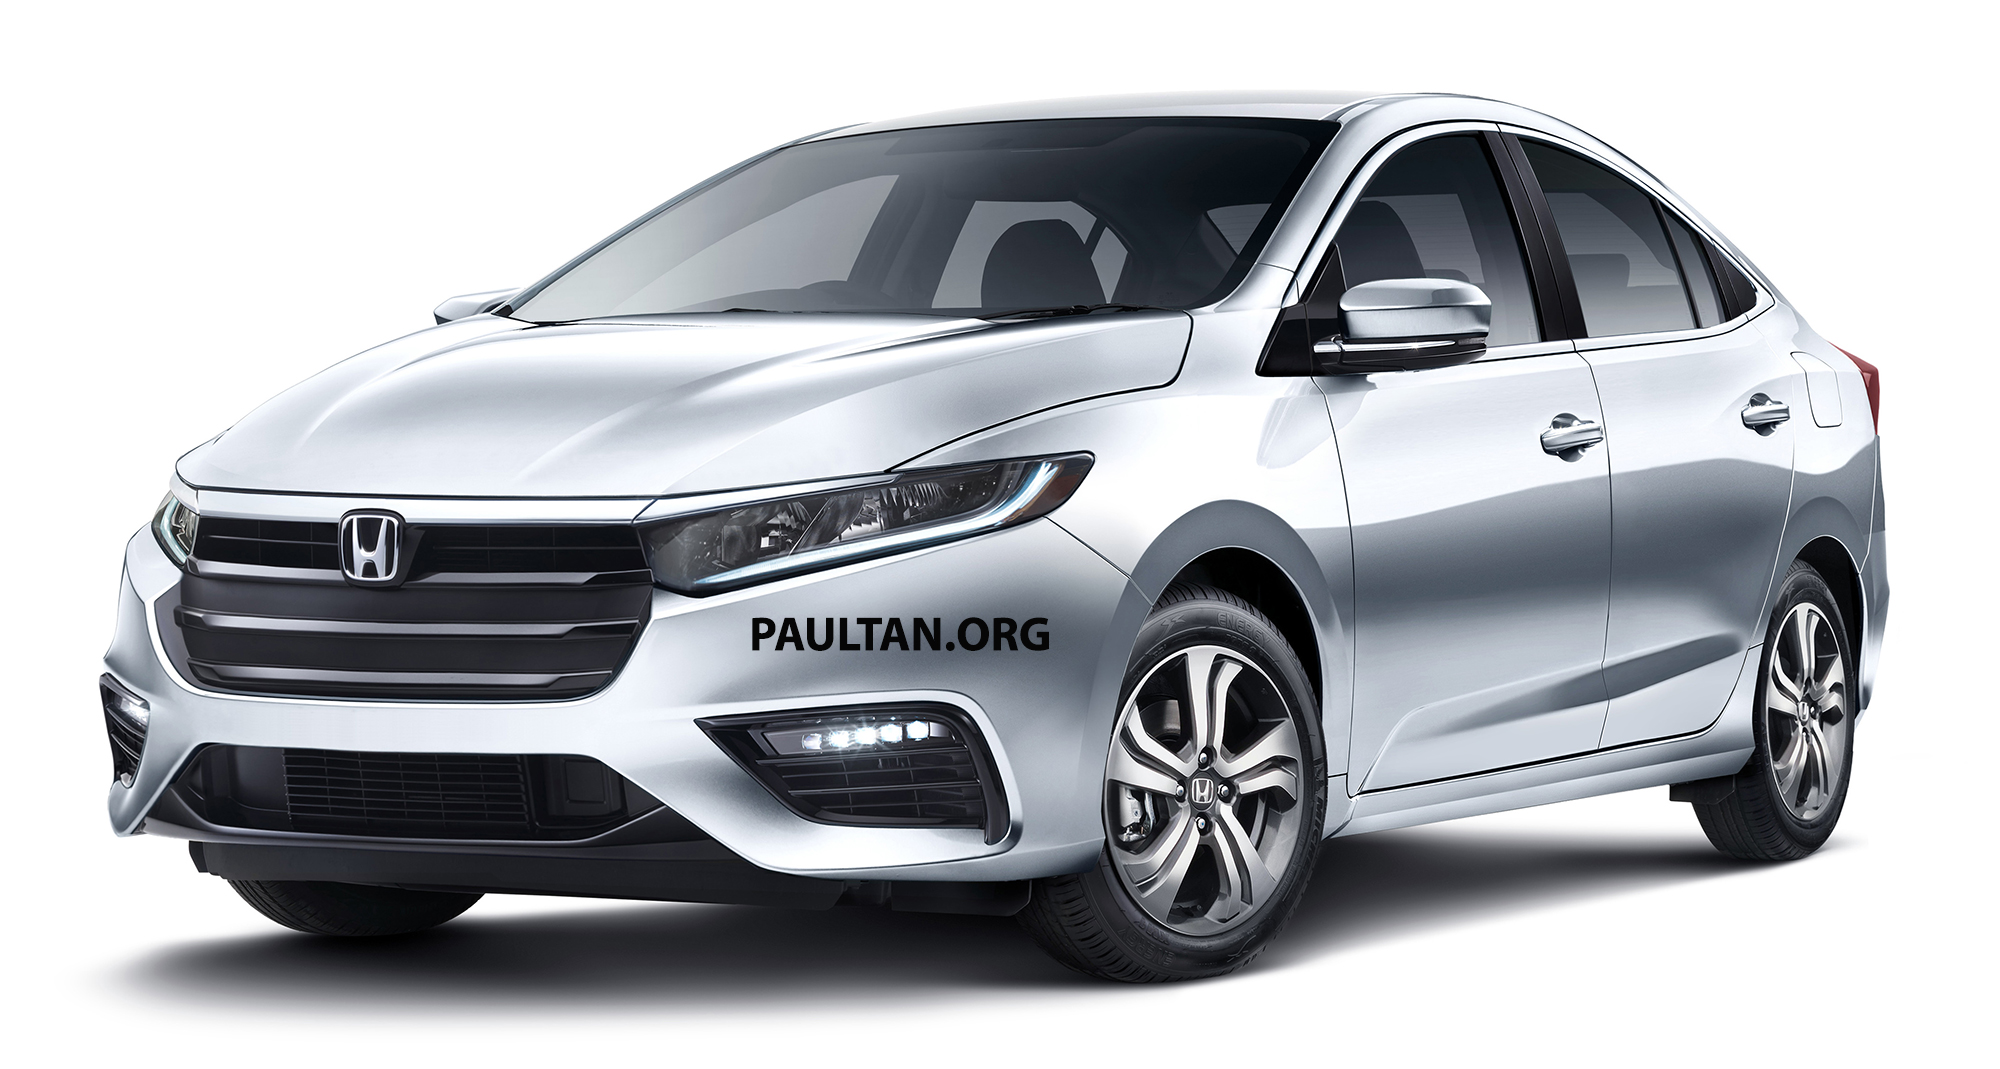 honda-city-insight-render-1.jpg